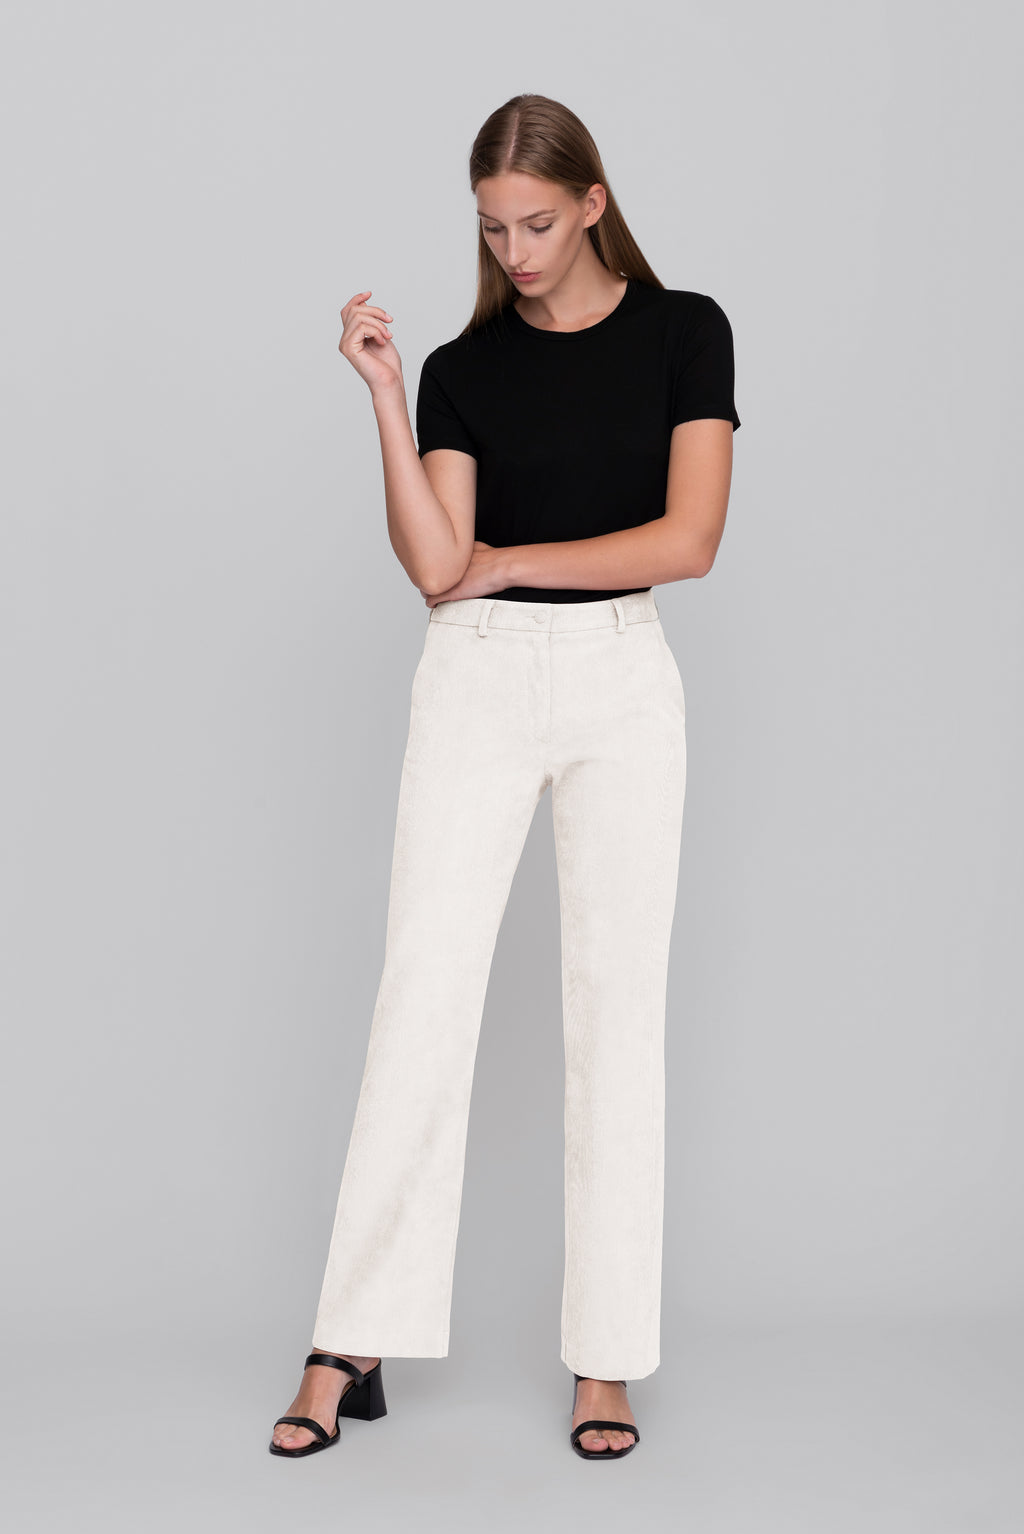 The Cream Corduroy Lover Pants